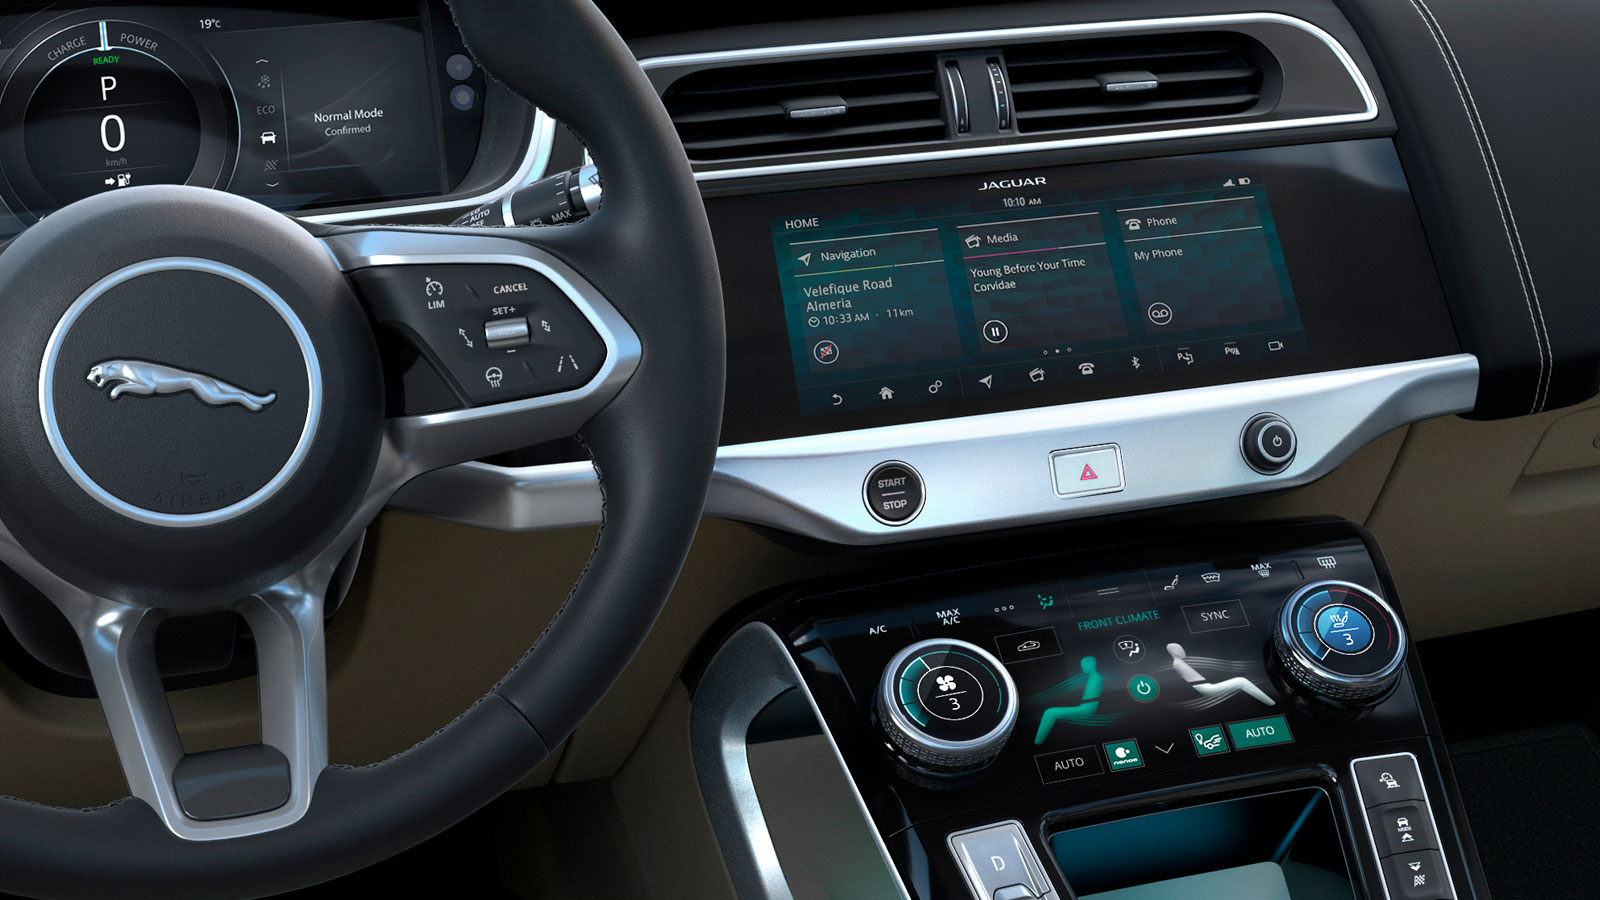 Jaguar I-Pace Dashboard And Controls